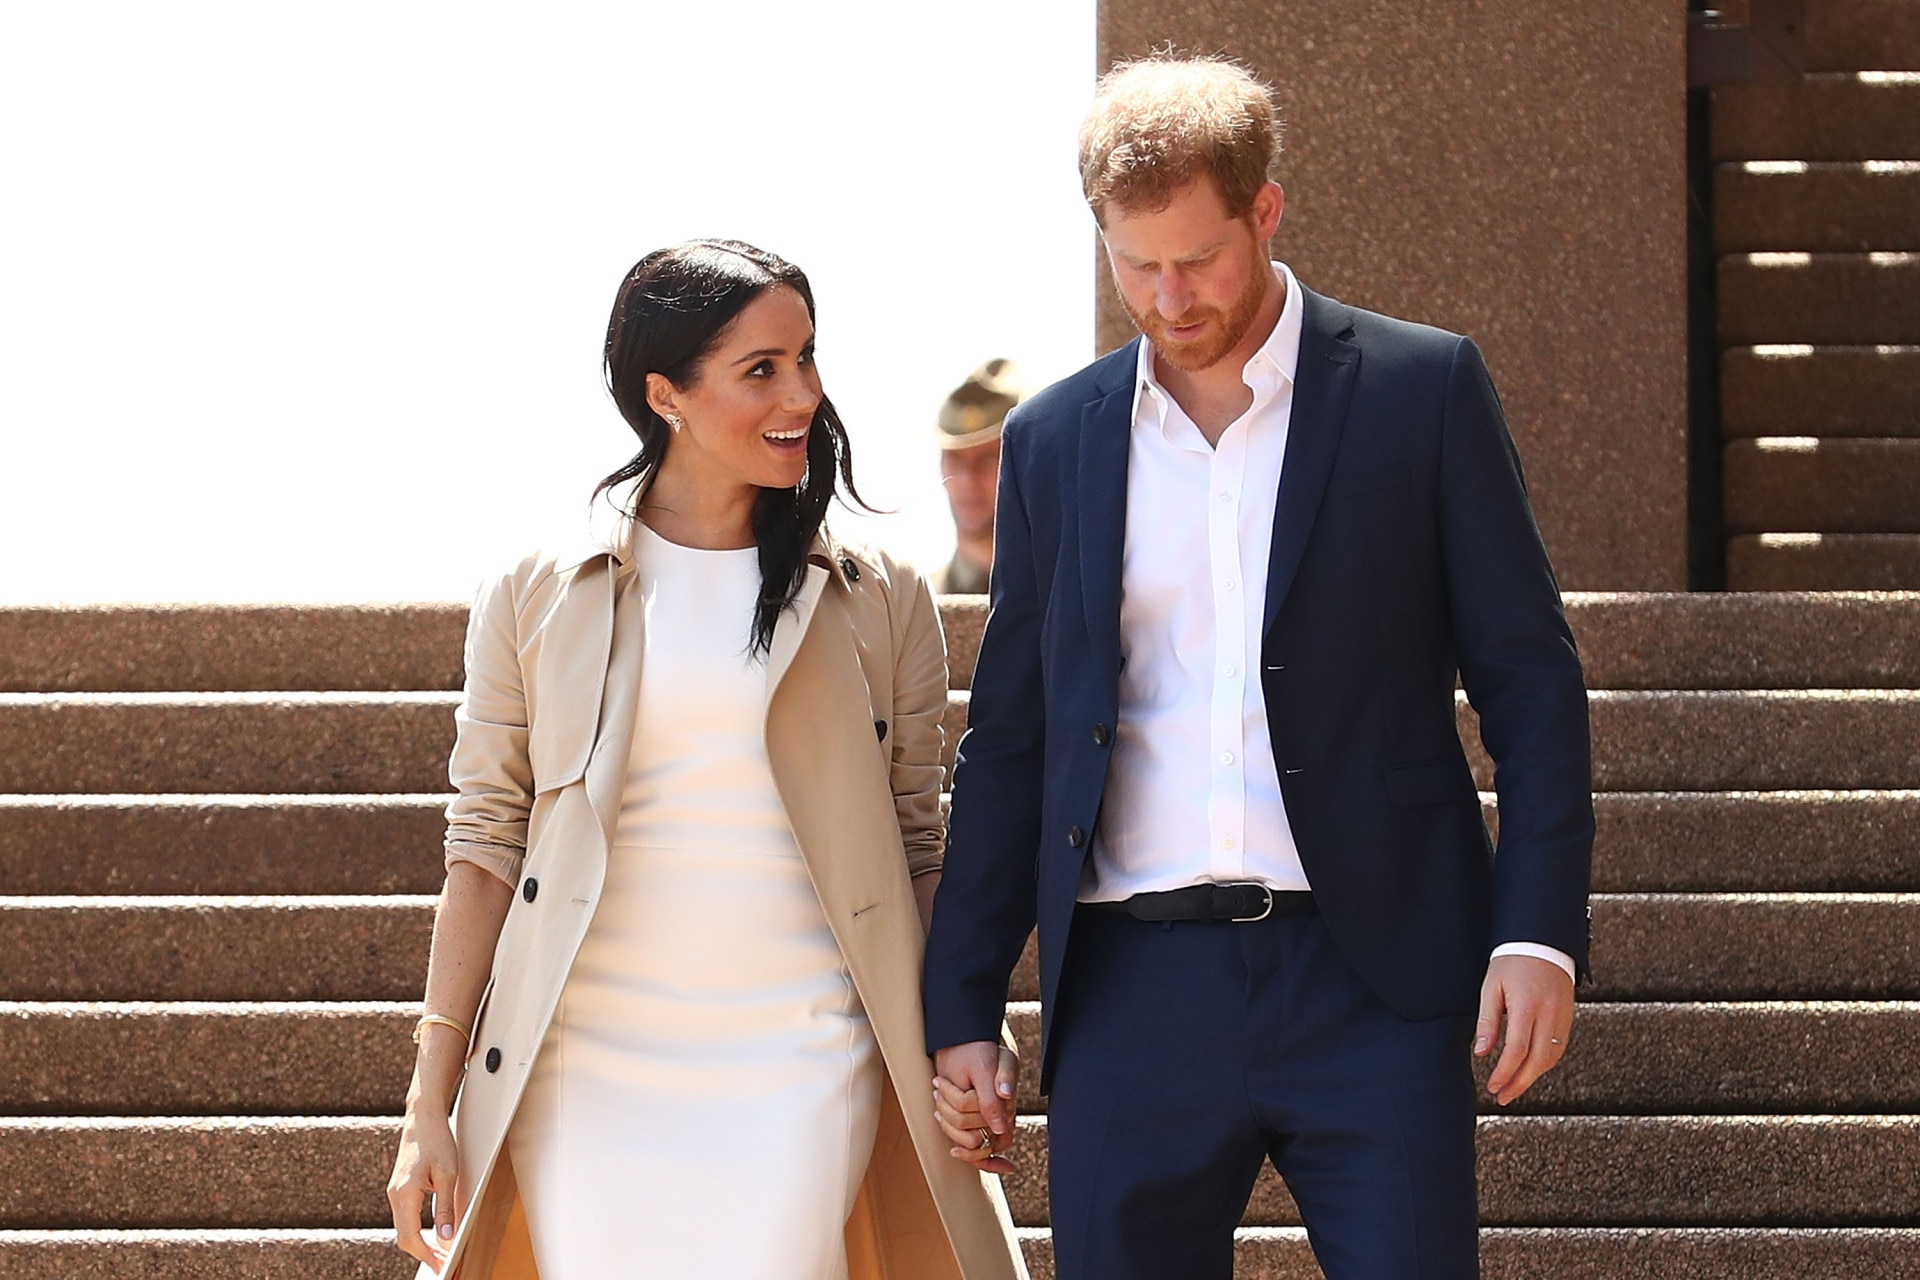 Meghan Markle celebrated Prince Harry's birthday with a sweet message and an unseen picture of baby Archie